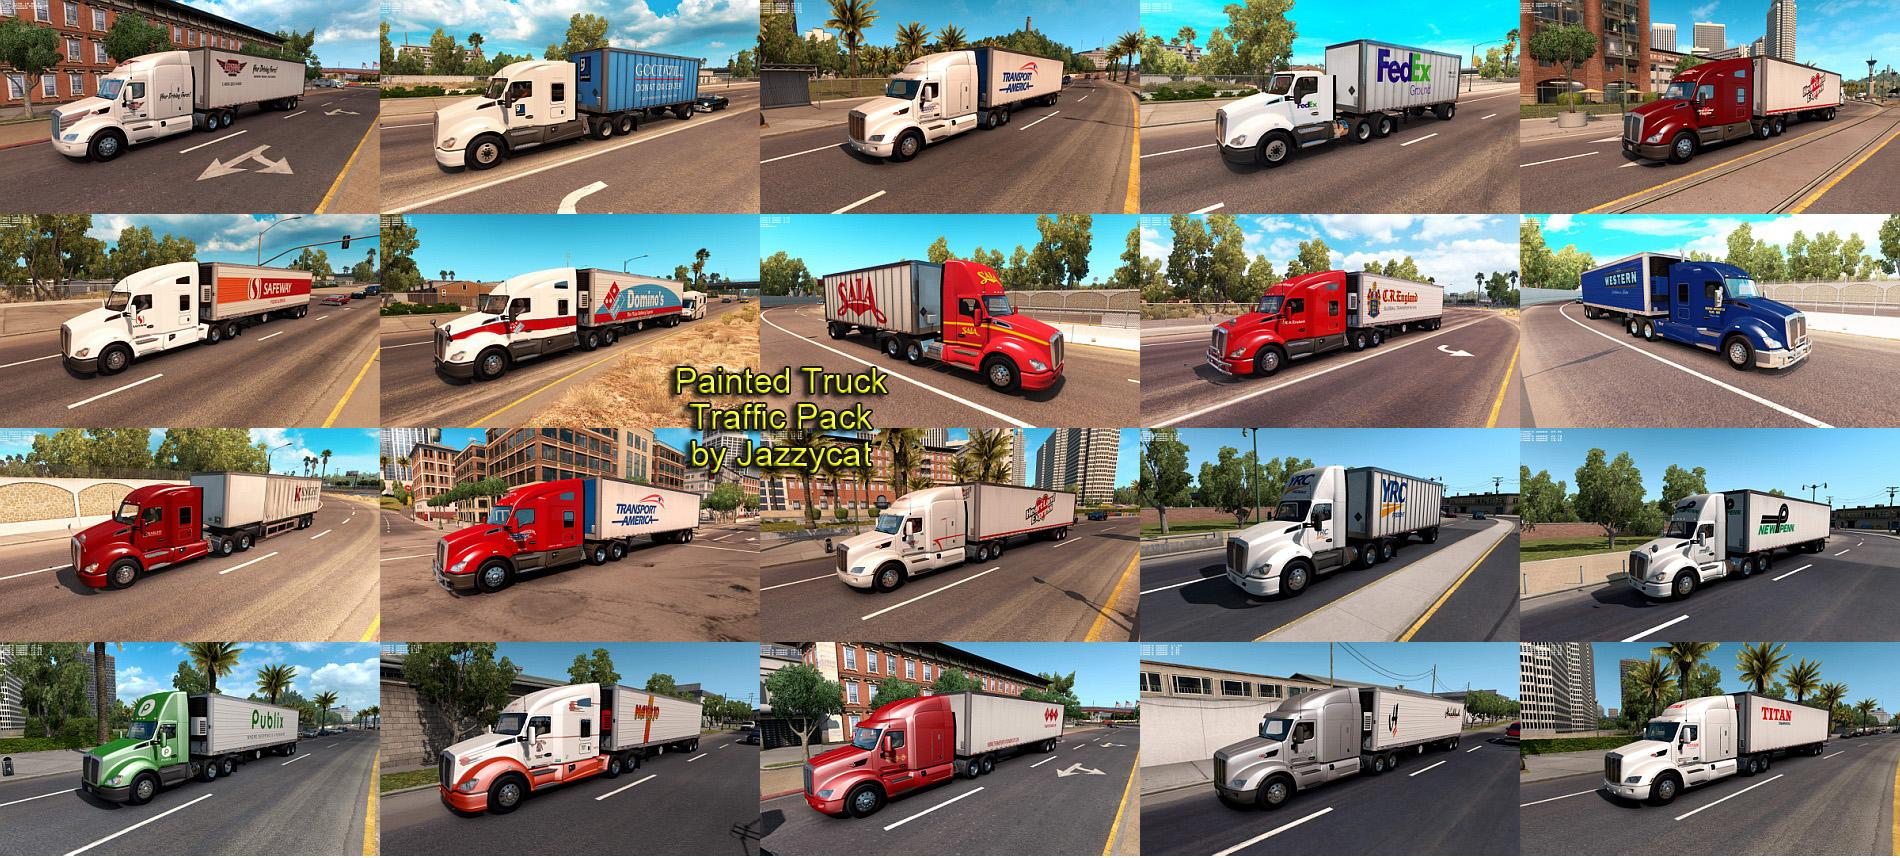 Painted Truck Traffic Pack by Jazzycat v 1.4.1